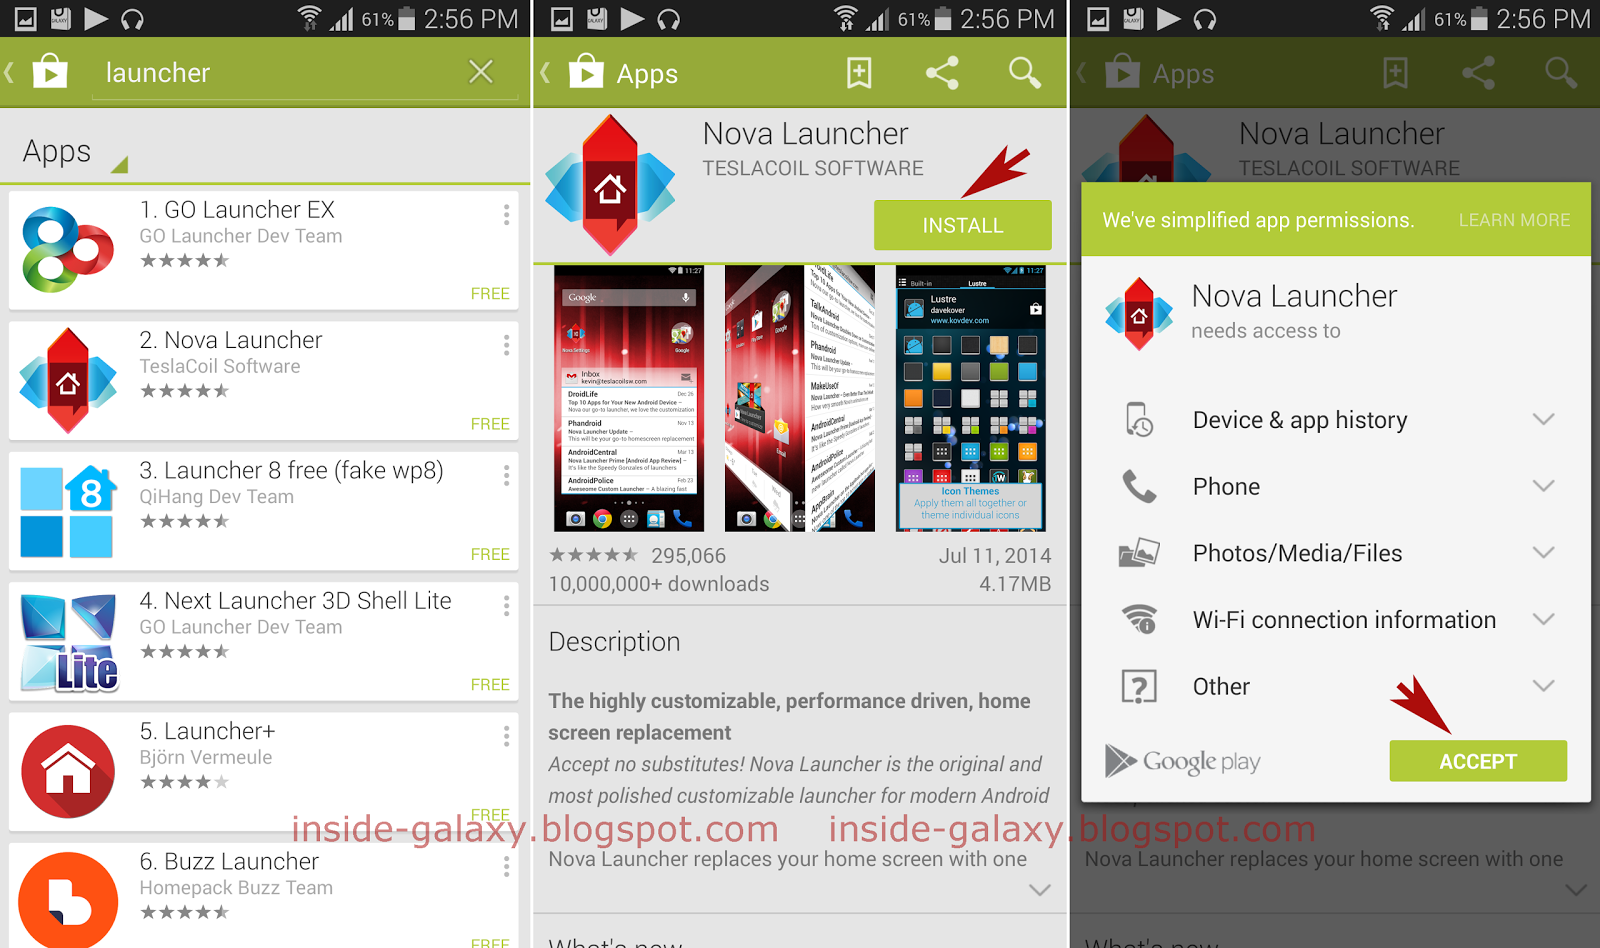 Samsung galaxy s5 how to install free applications from Play store app